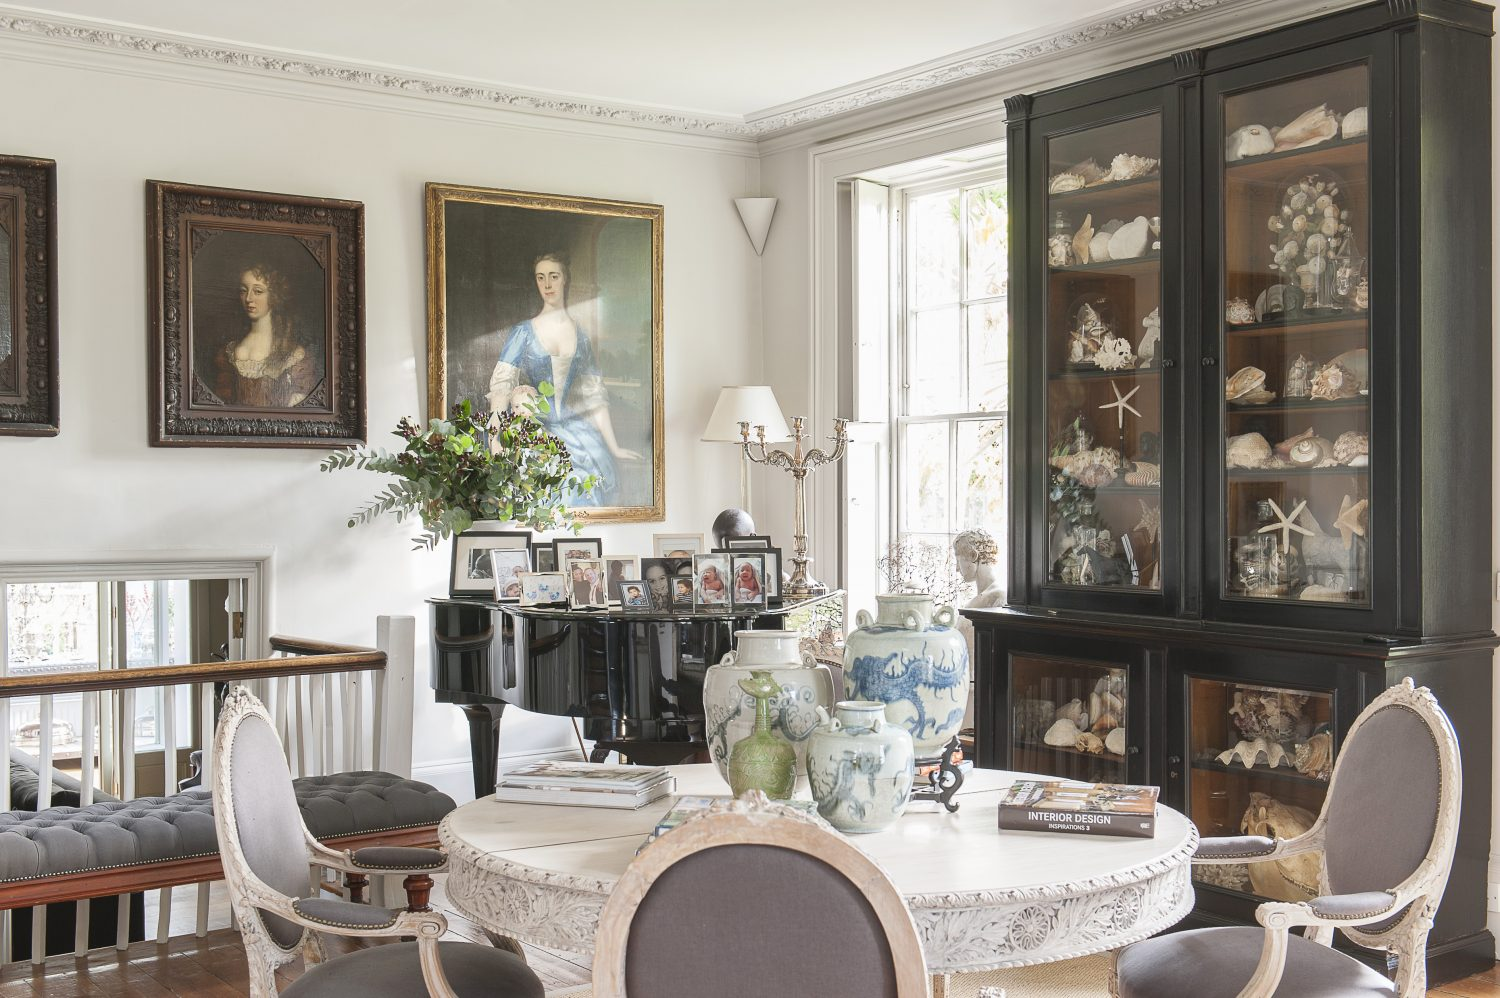 The dining area with beautiful artwork and a cabinet full of collector's items.